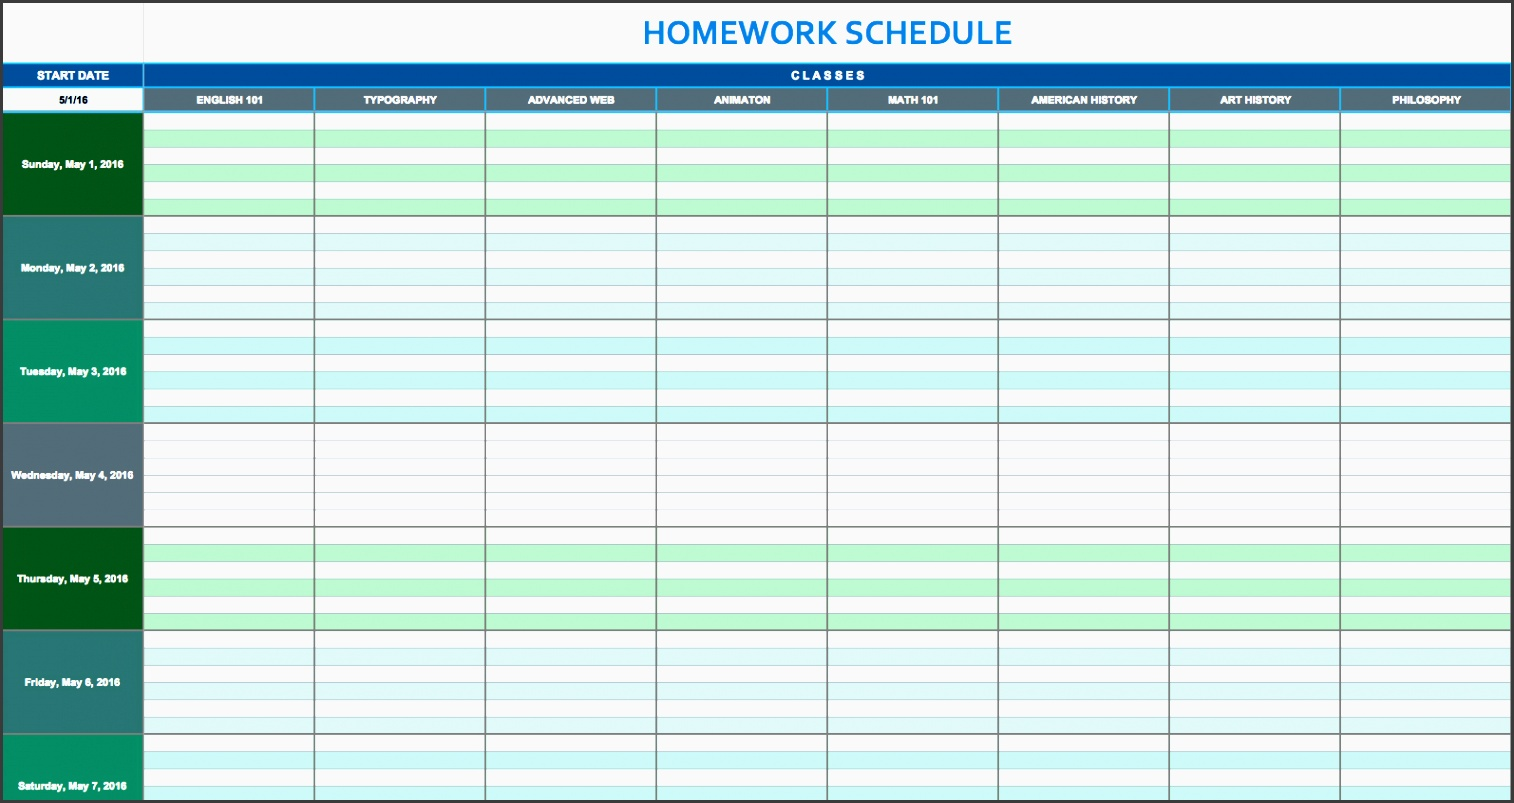 organize your homework assignments and study time for each class with this homework schedule template enter the starting date add your class names